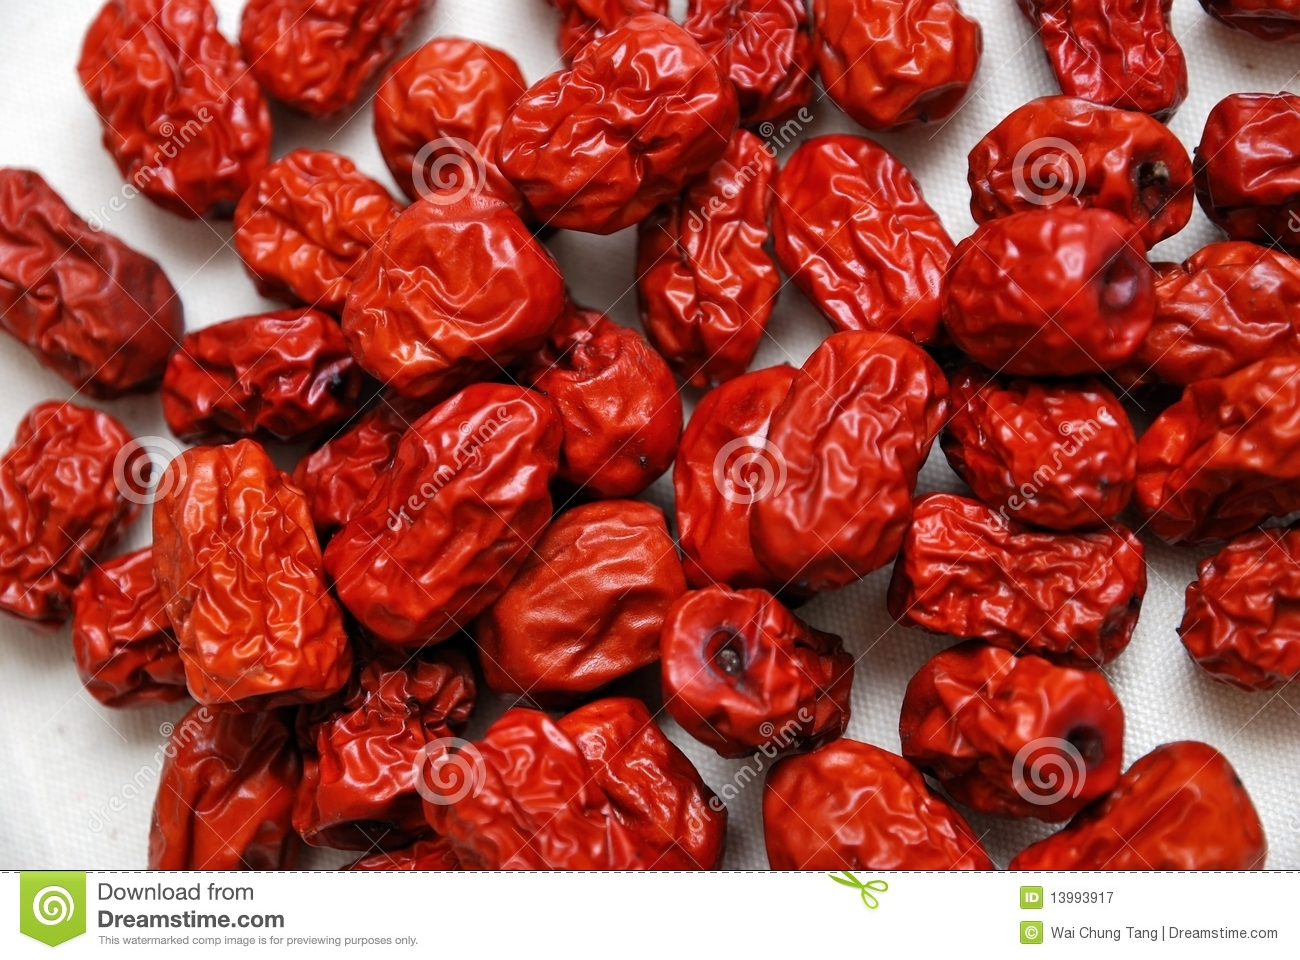 Chinese traditional medicine ingredient red dates for concepts such